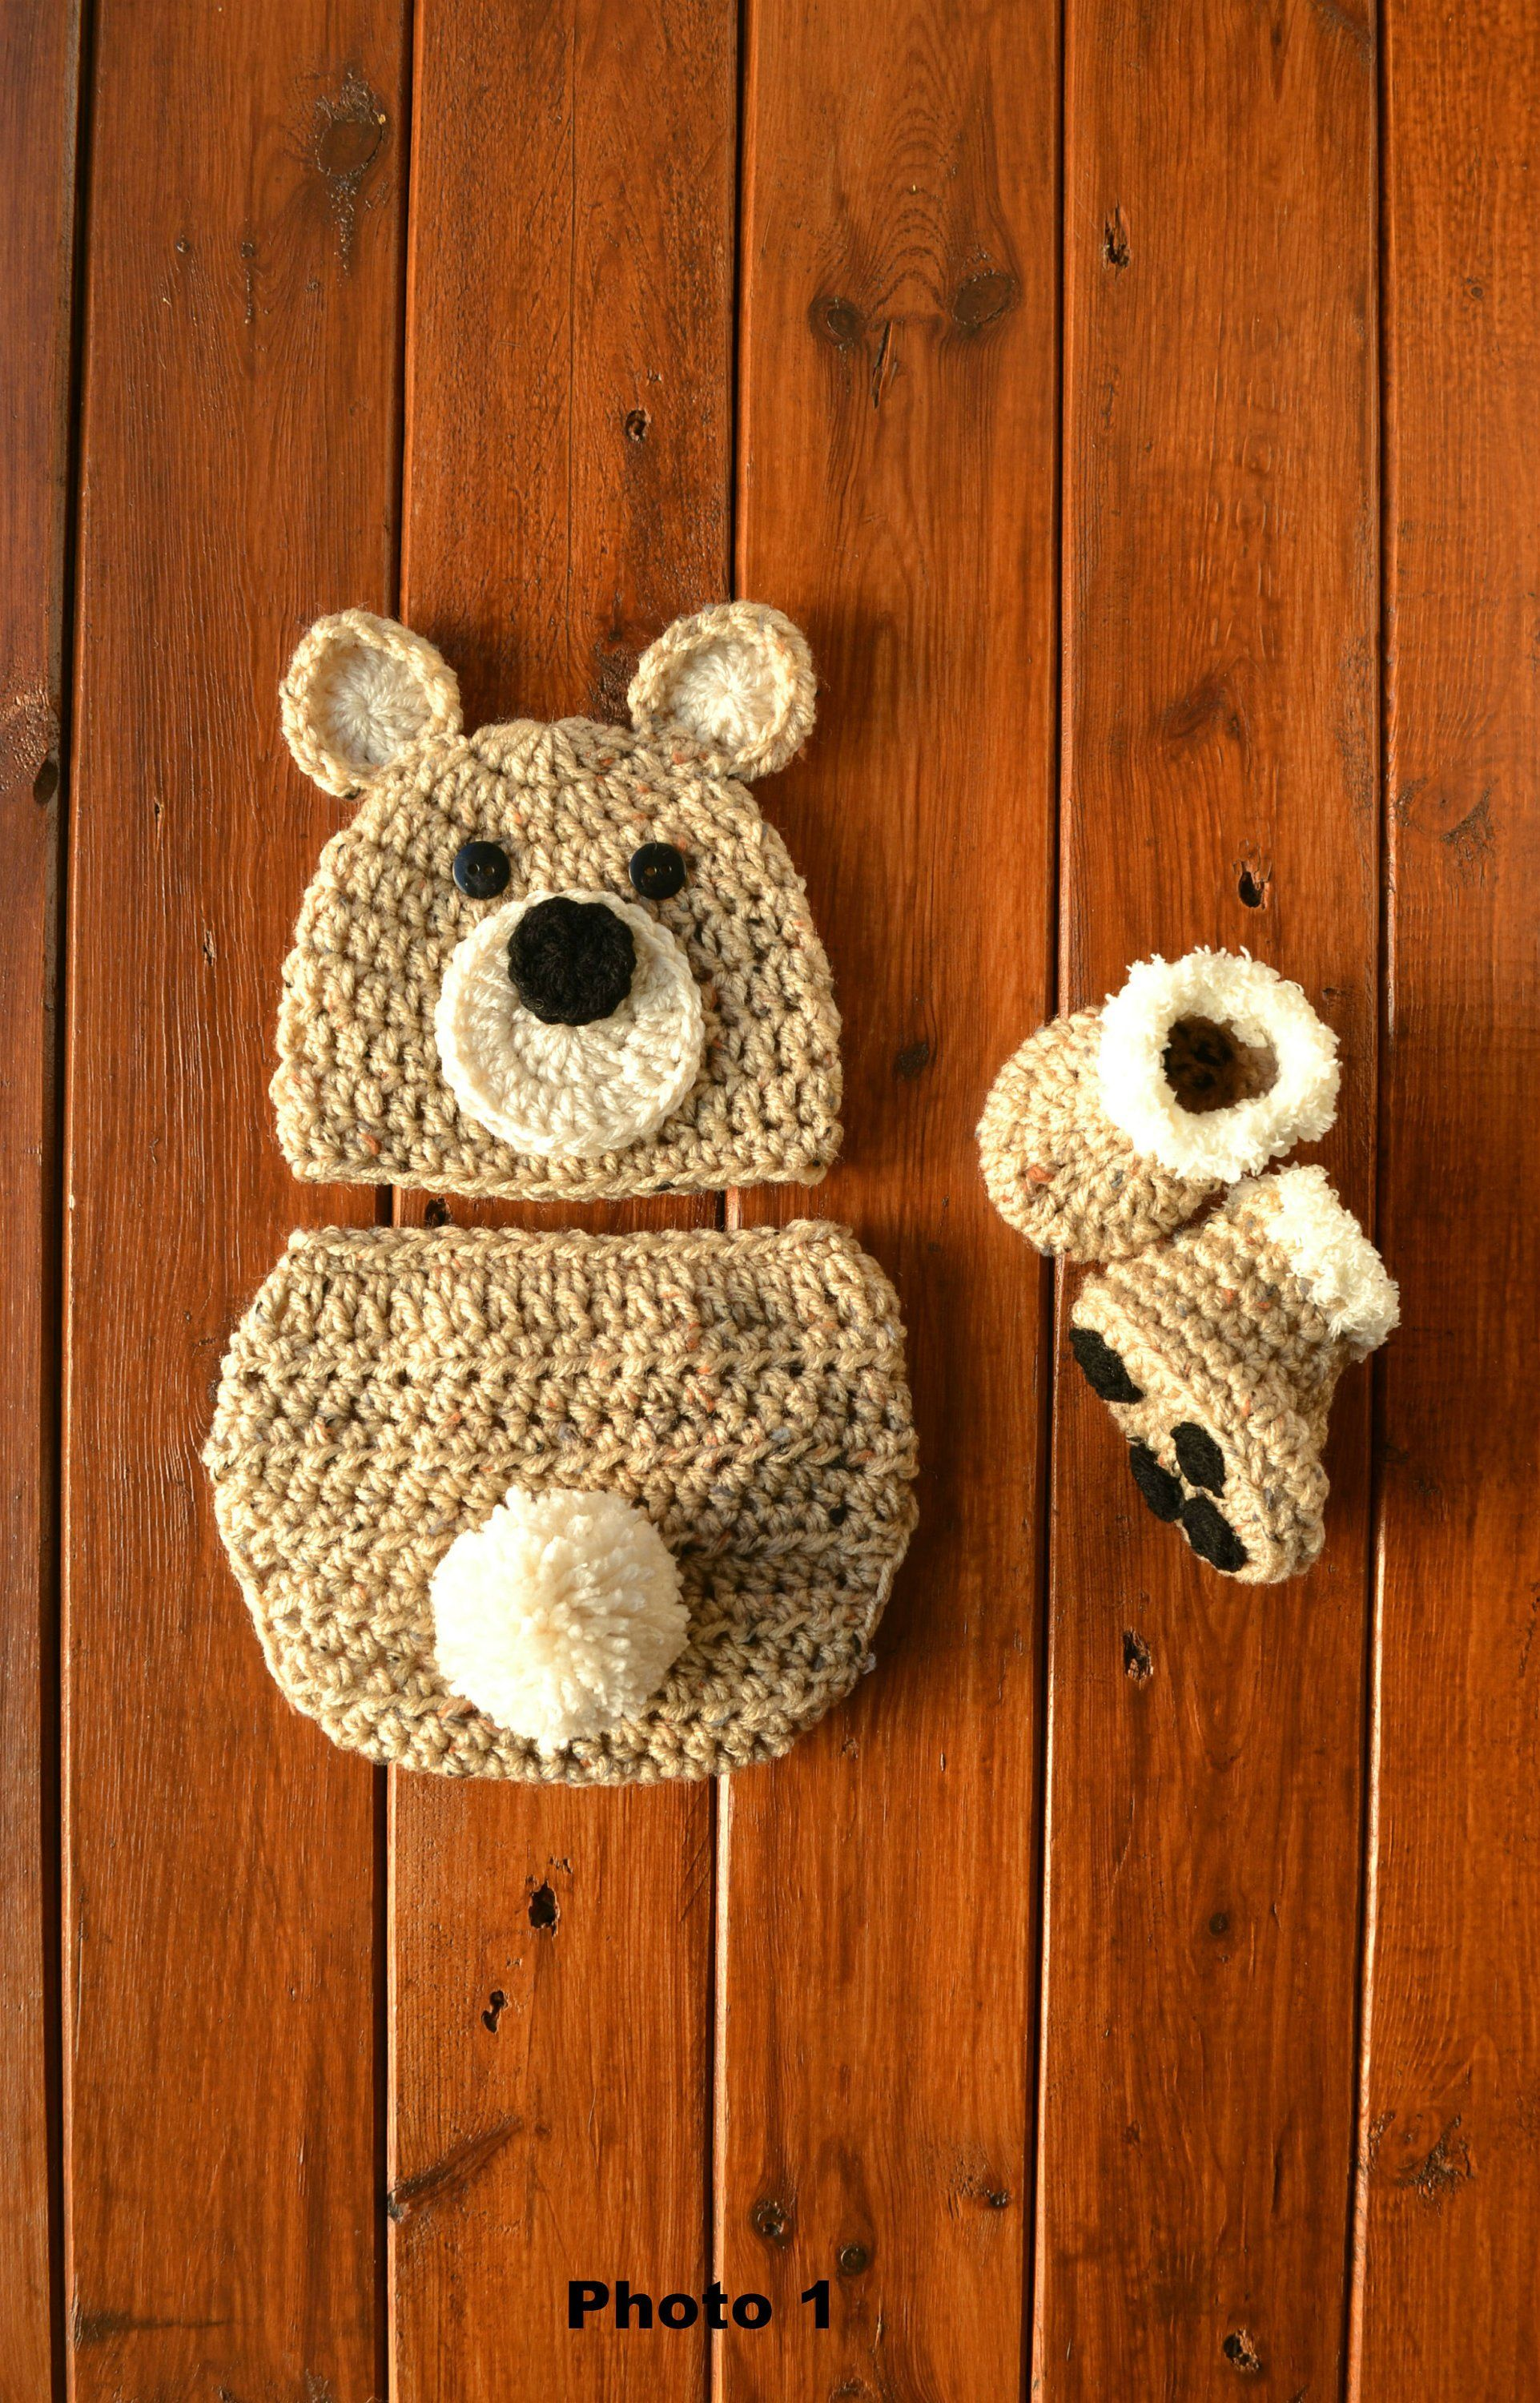 c8b309596 ... Prop Outfit Child Bathe Reward Bear. Excited to share the latest  addition to my #etsy shop: Crochet Newborn Baby Bear